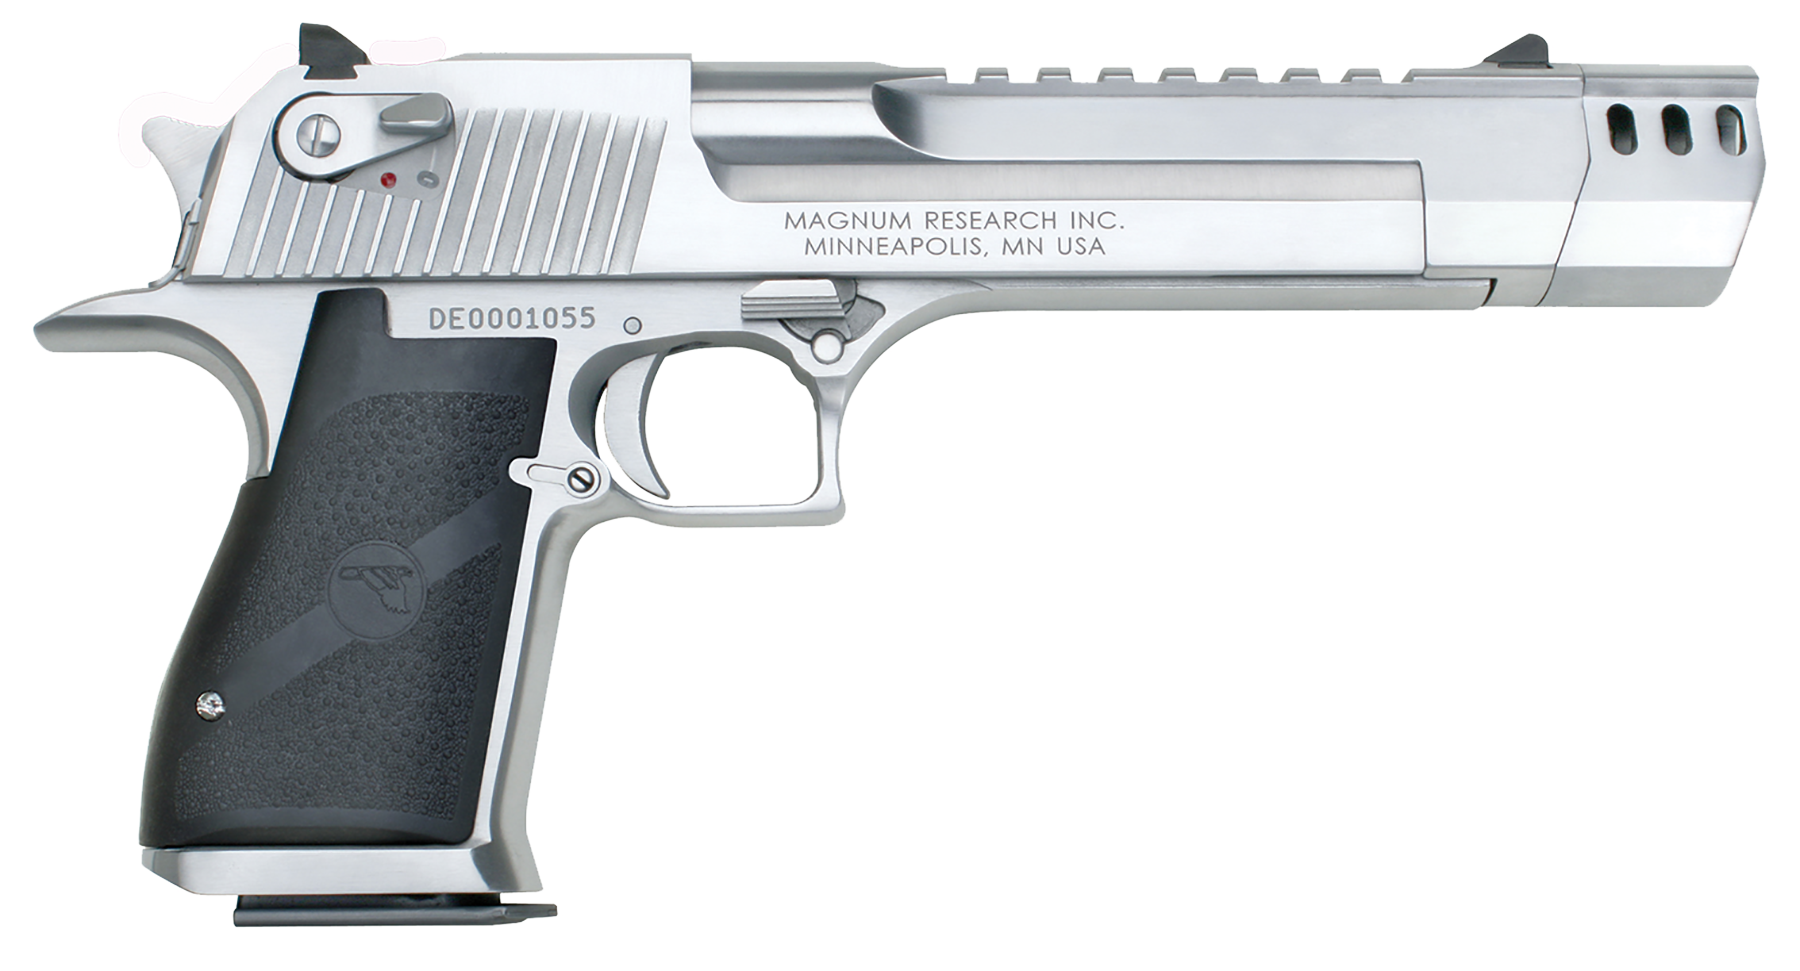 Desert eagle png. Magnum research de bcmb